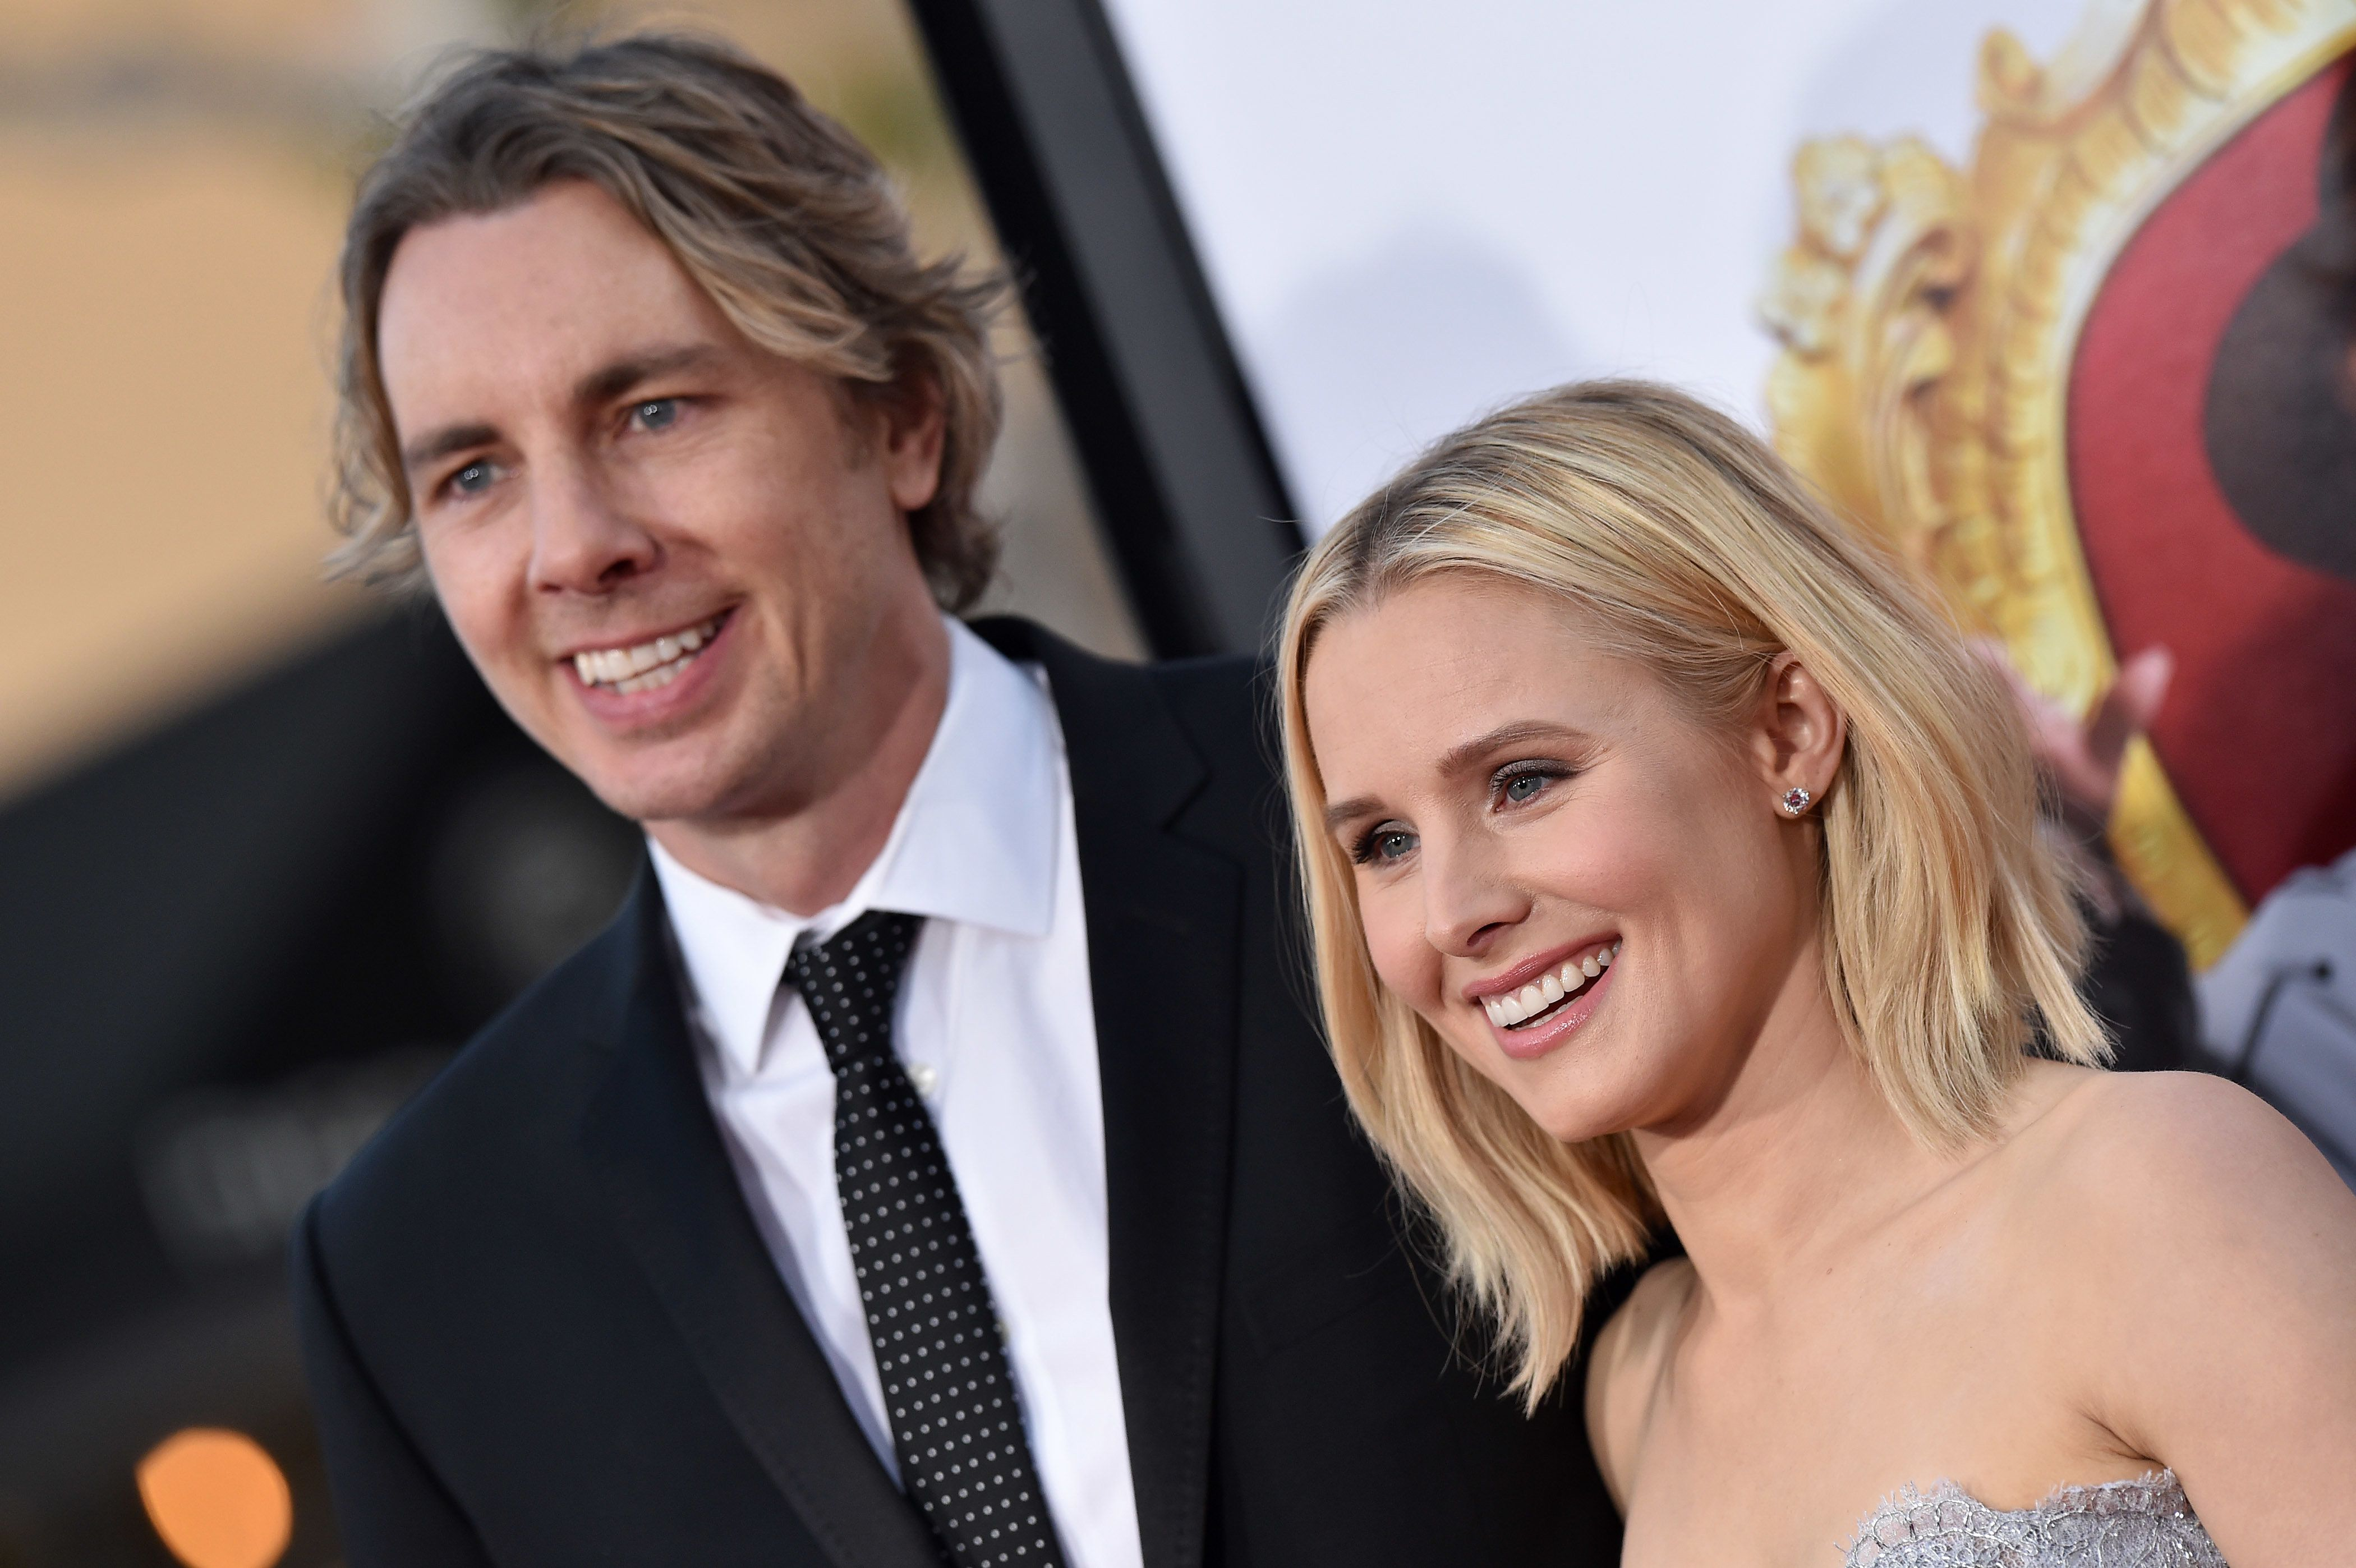 Dax Shepard and Kristen Bell inMarch 2016 in Westwood, California.